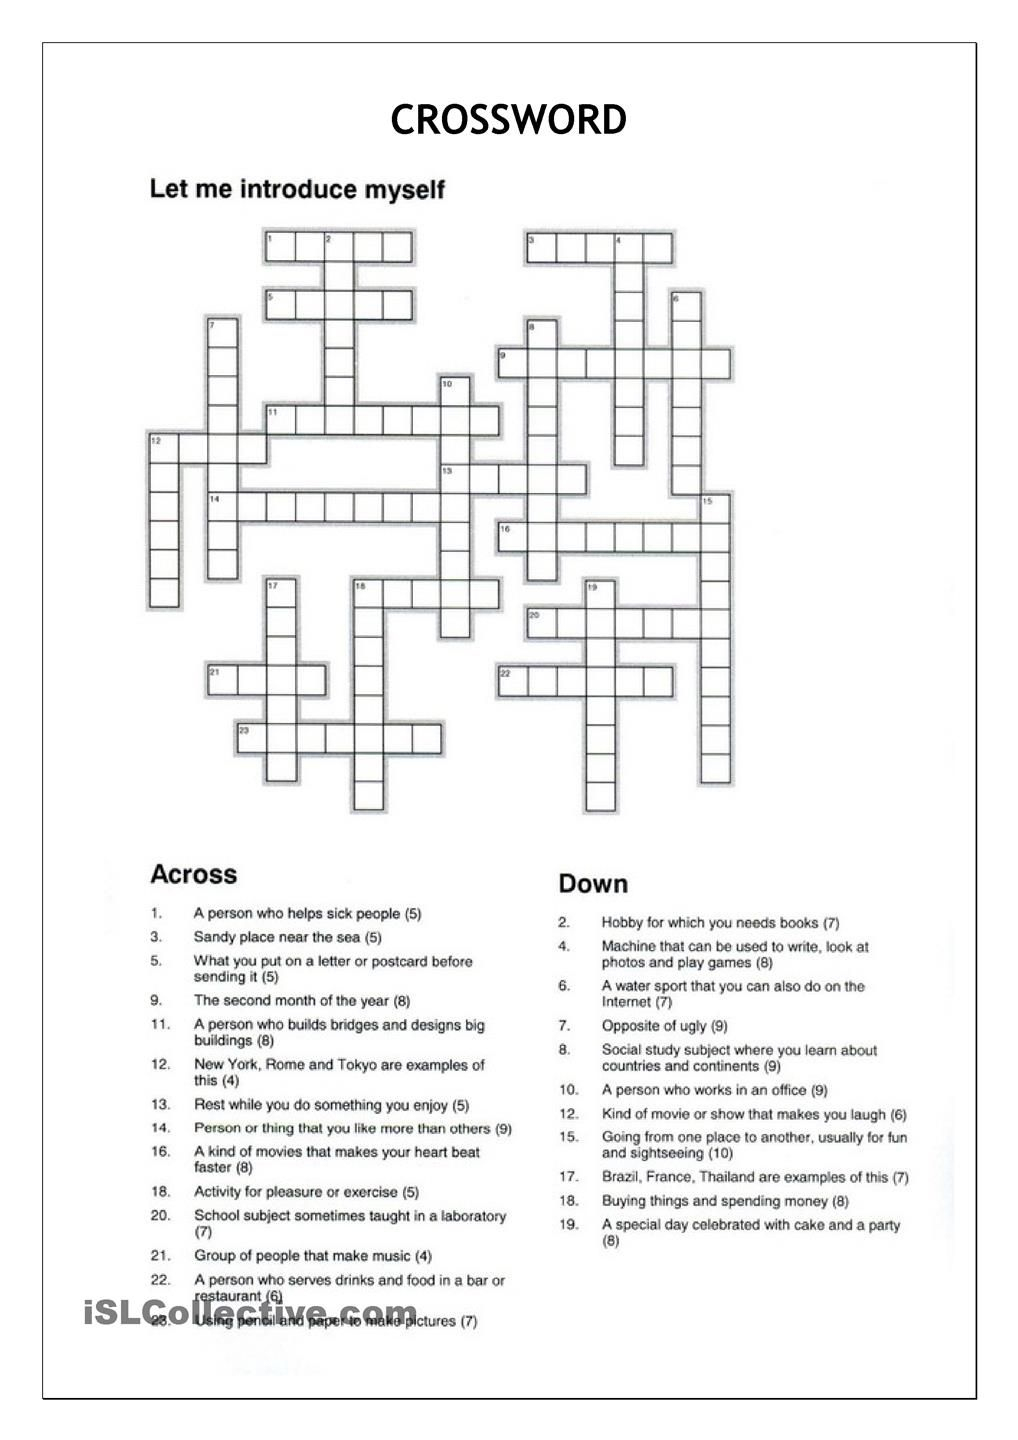 Crossword - Let Me Introduce Myself | Crosswords | Crossword - Crossword Puzzles Vocabulary Printable